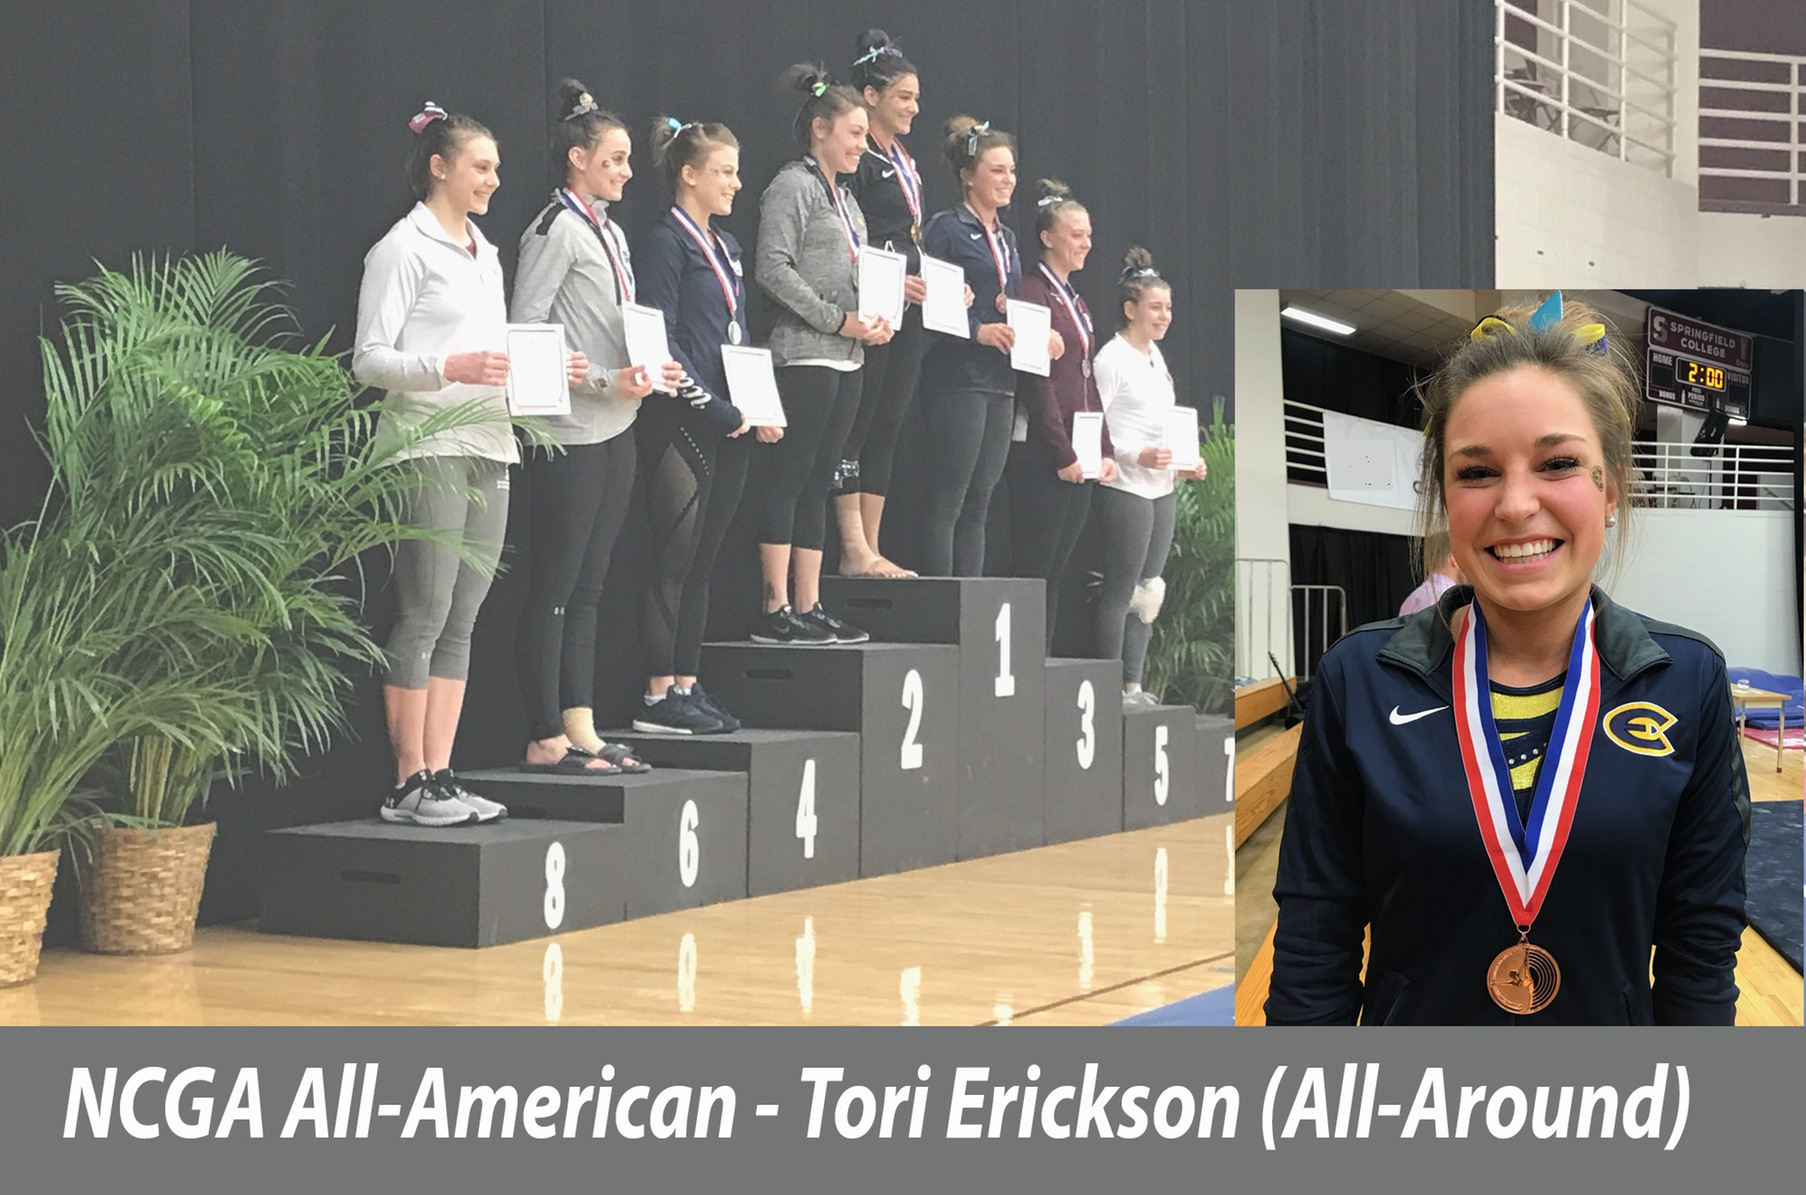 Erickson earns All-American honors at NCGA Championships